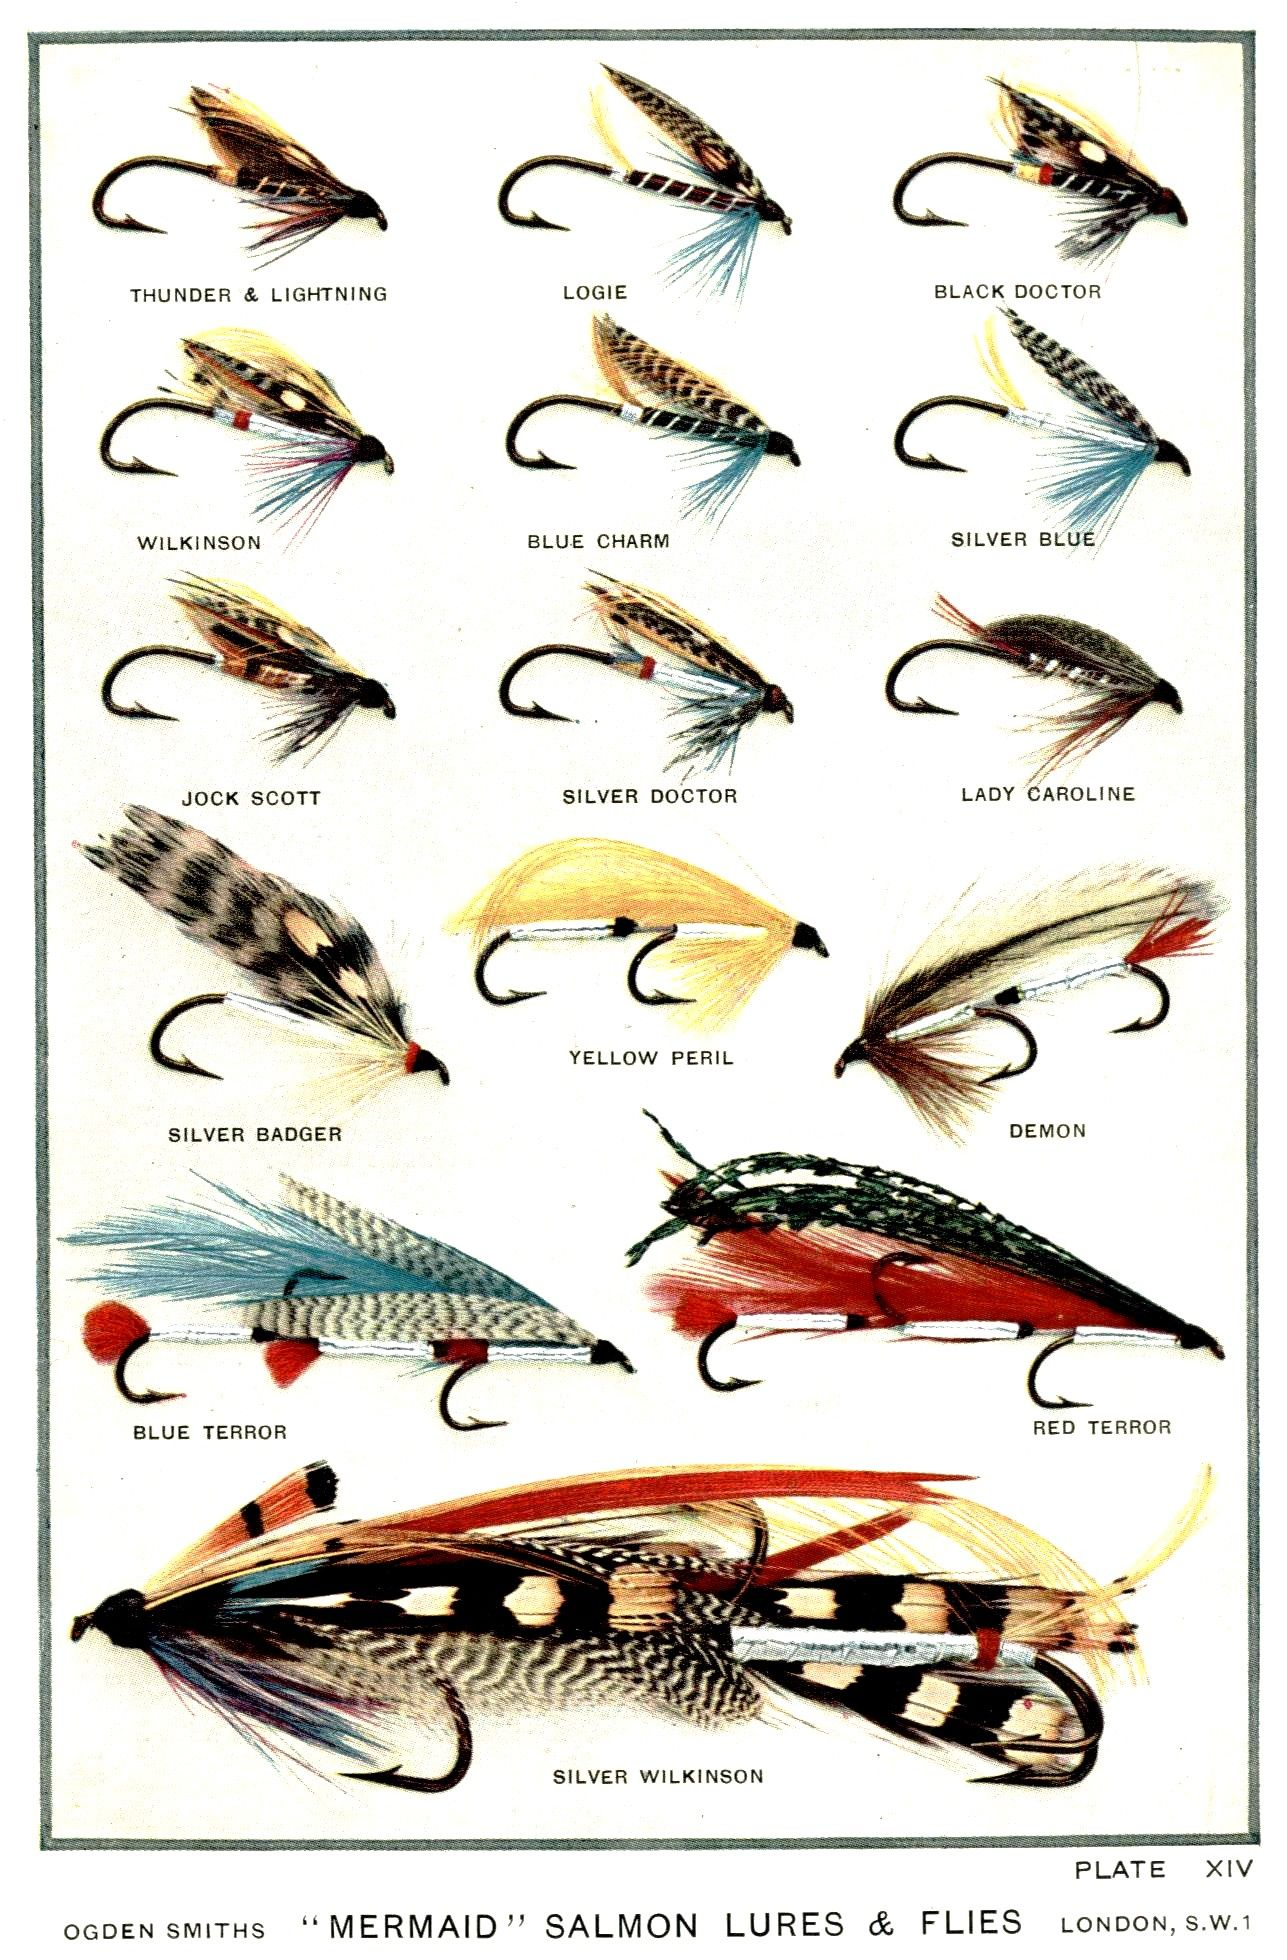 17 best images about salmon flies on pinterest | canada, the fly, Fly Fishing Bait